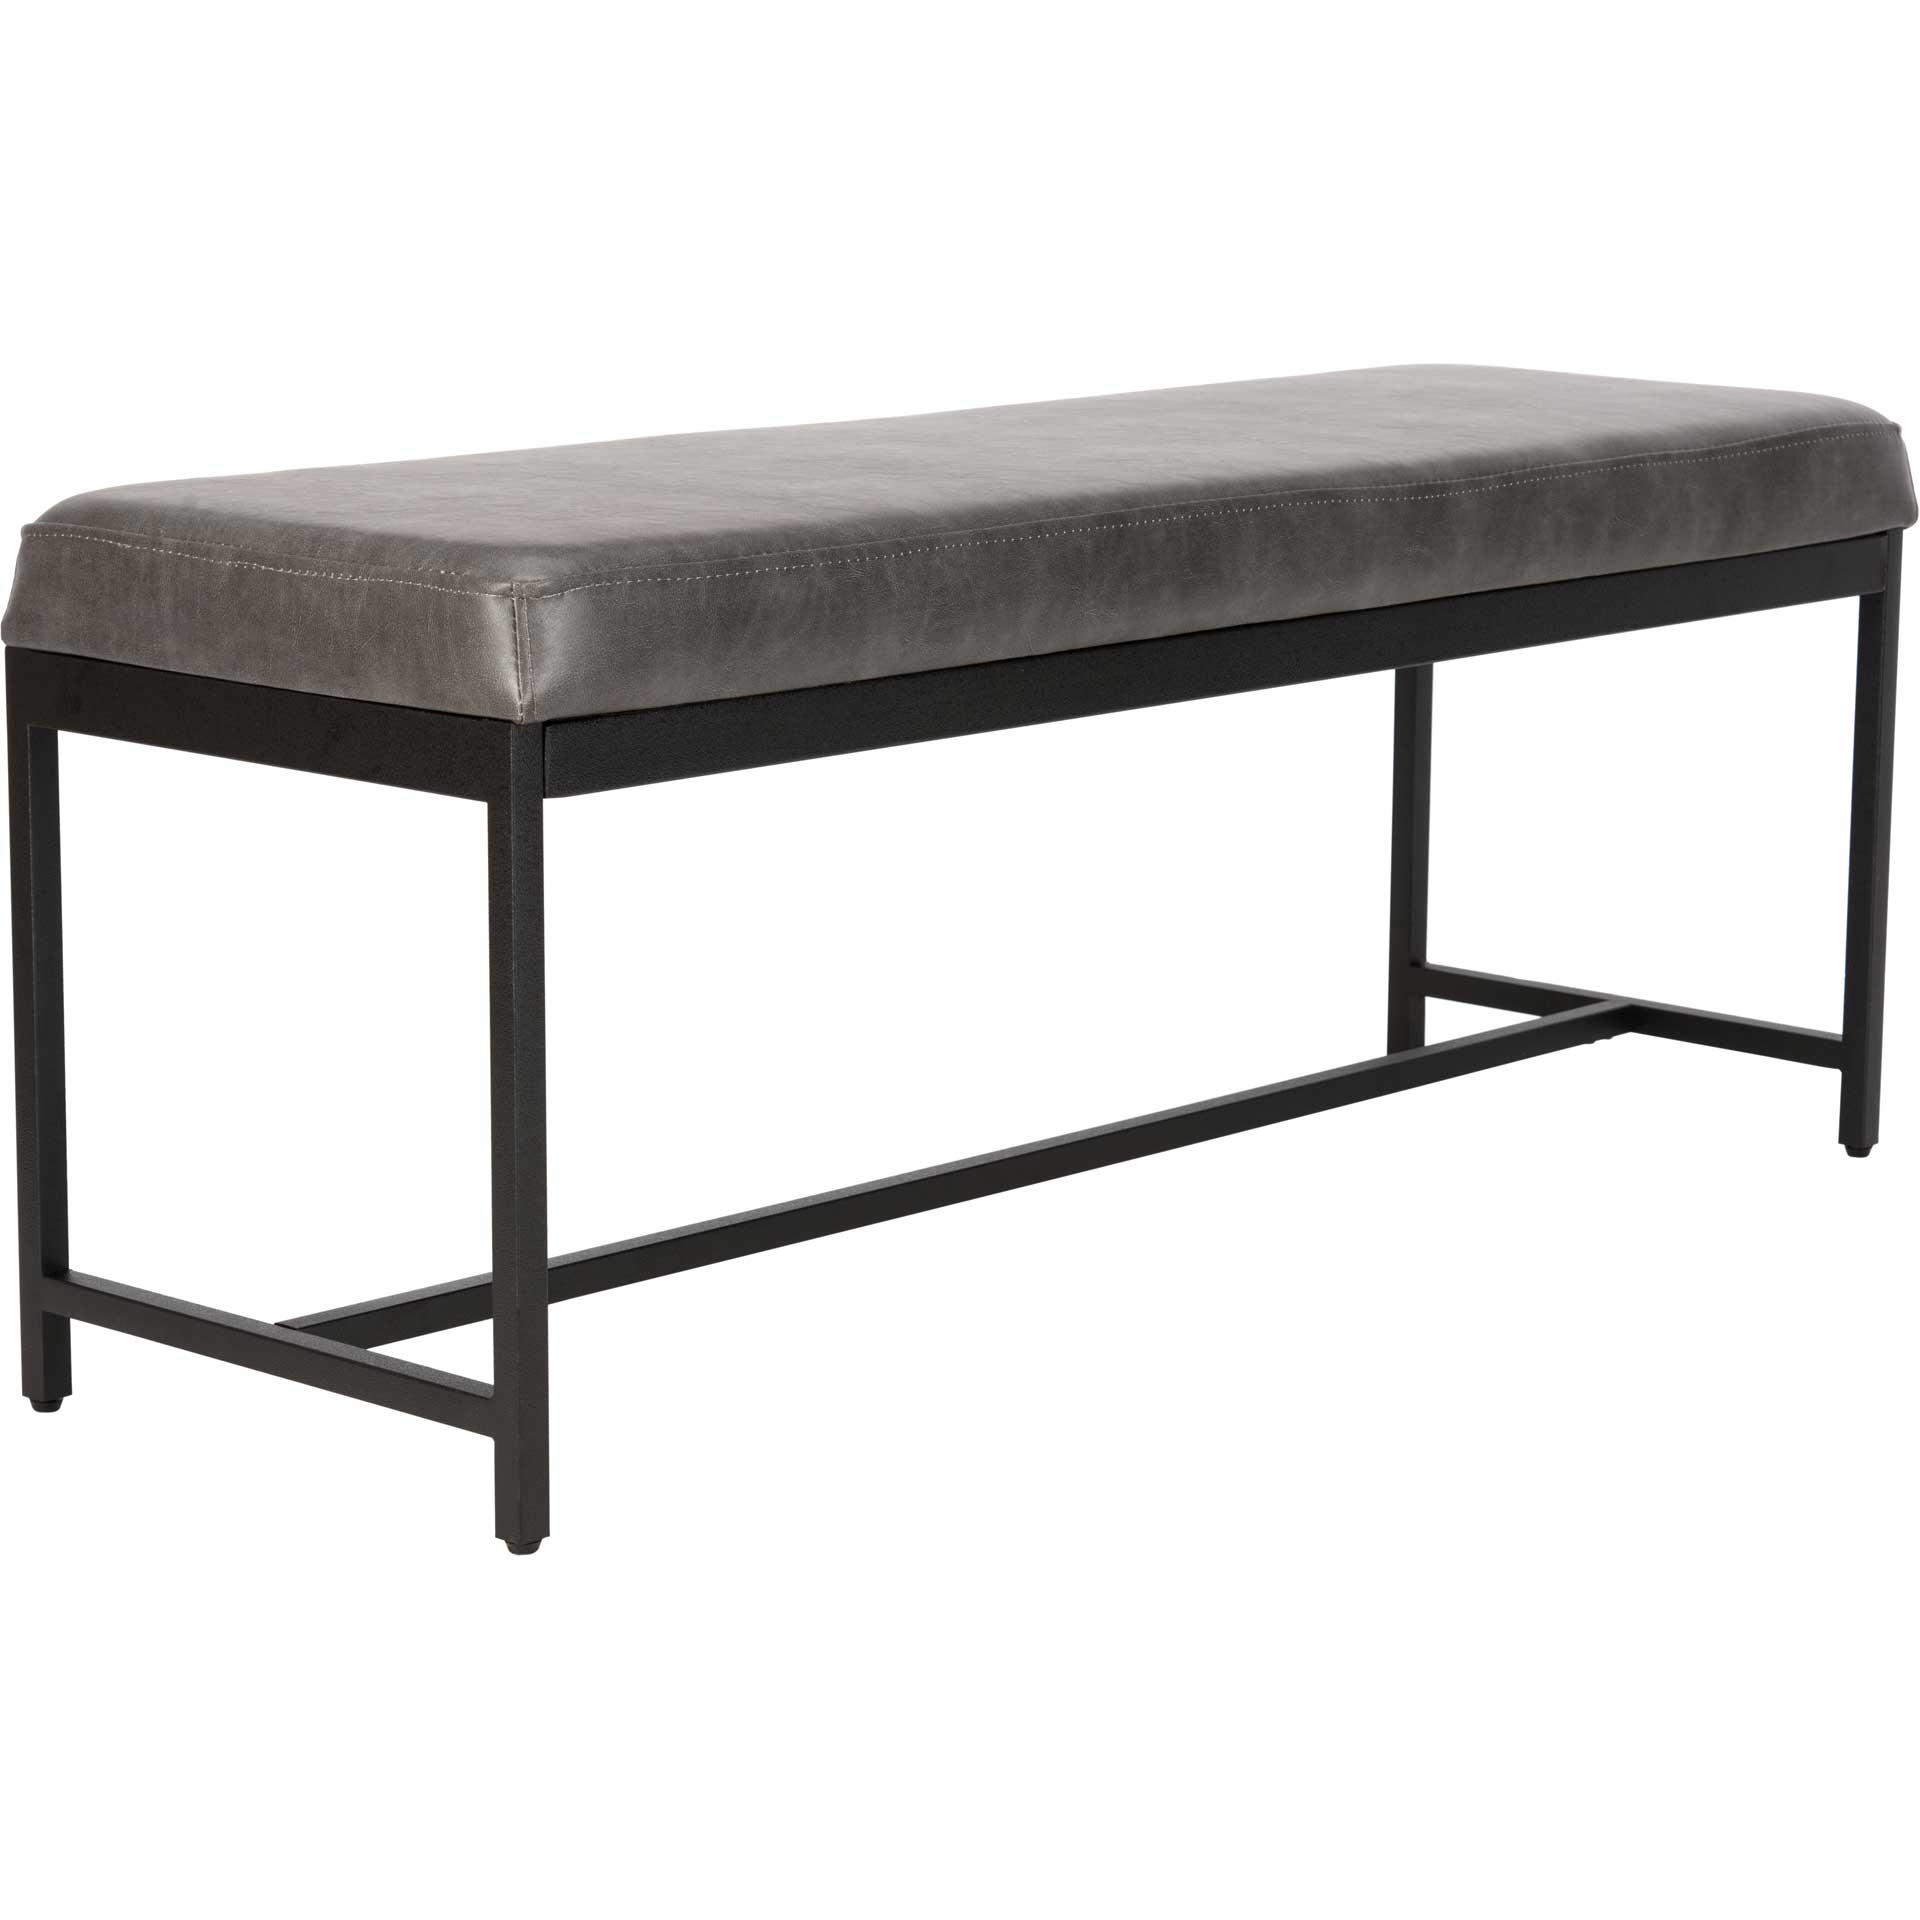 Chamonix Faux Leather Bench Gray